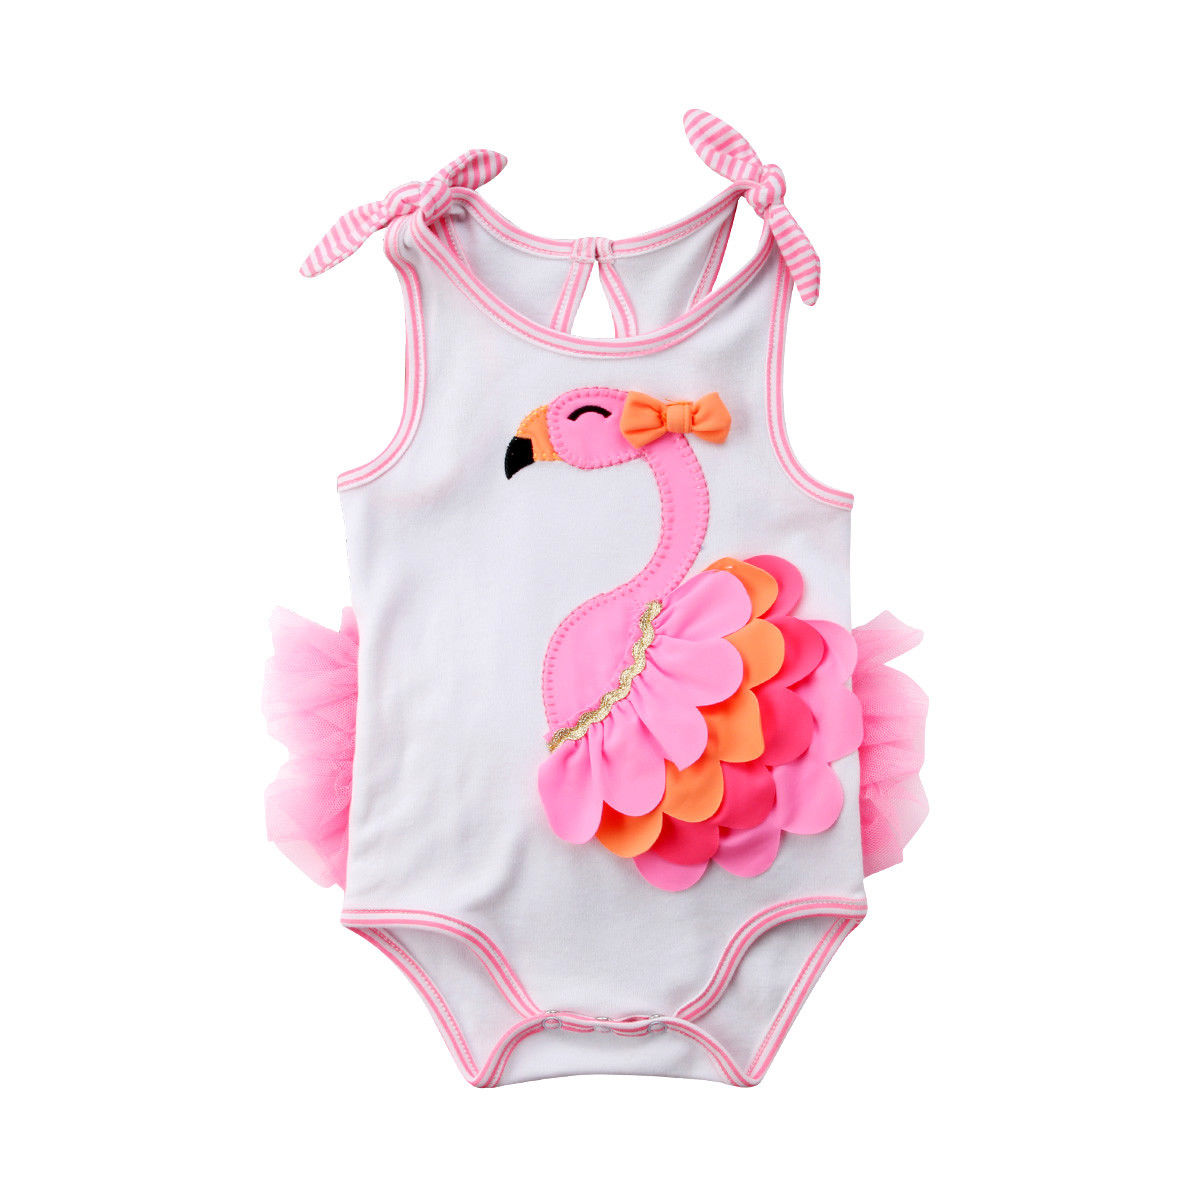 0-18M Cute Newborn Kids Baby Girl Clothes Flamingo Flower Lace Romper Sleeveless Lace up Jumpsuit Outfits pink lovely stylish round collar sleeveless lace spliced women s jumpsuit